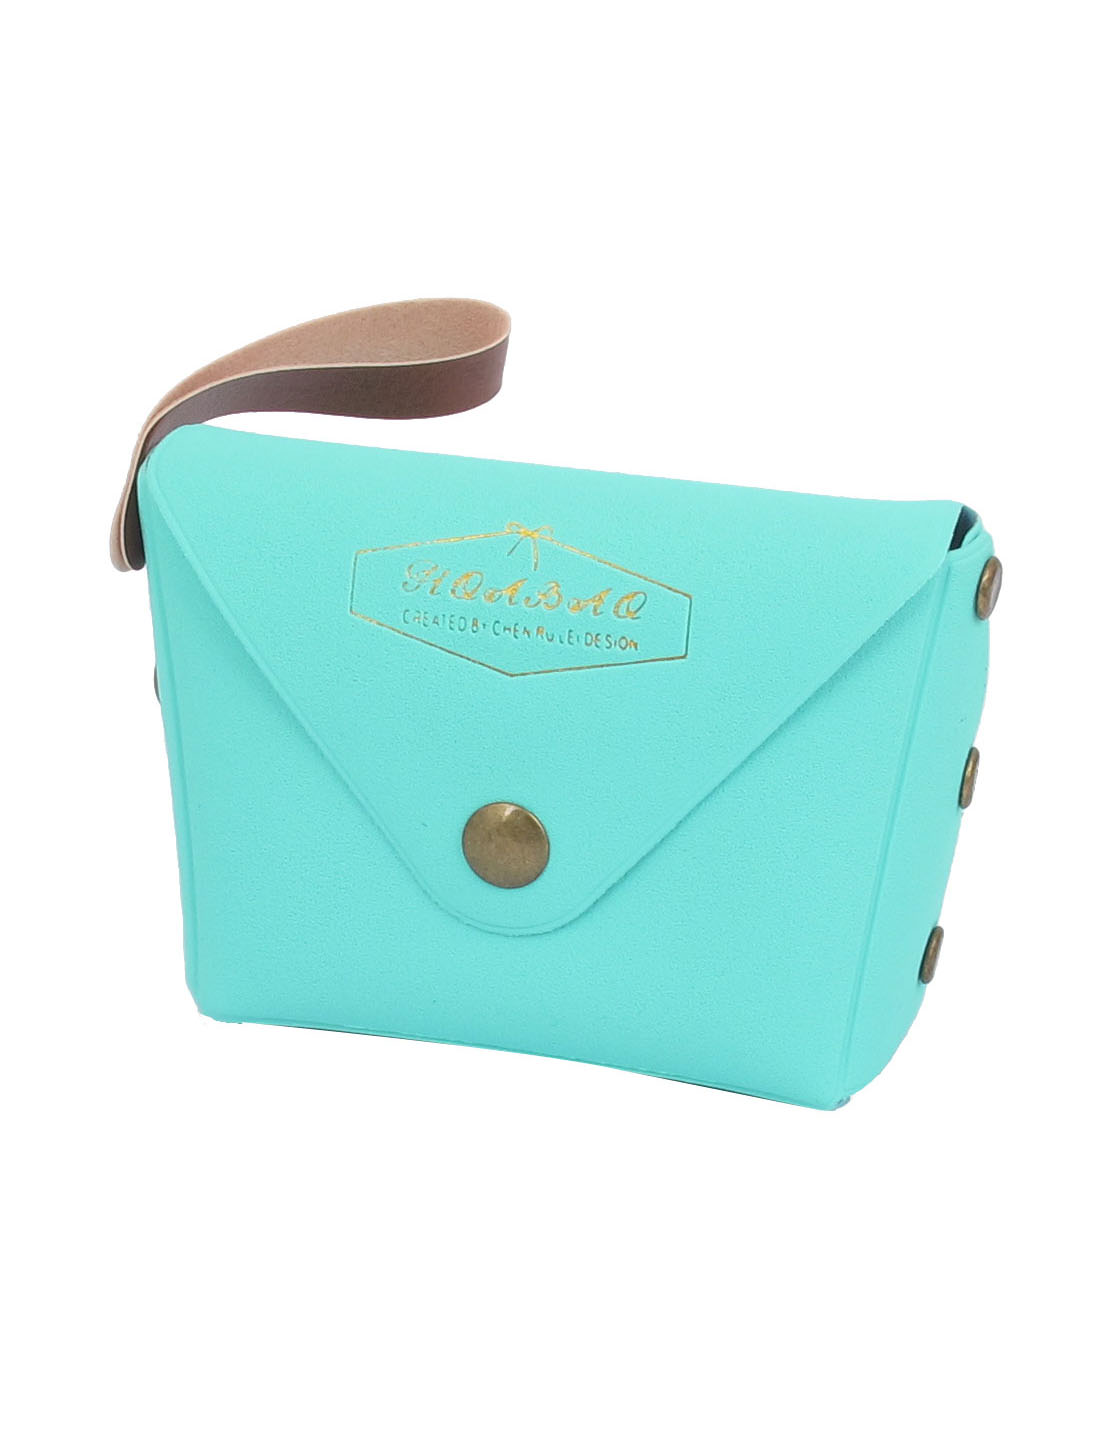 "3.7"" Length Aquamarine Color Faux Leather Cute Mini Single Compartment English Words Pattern Portable Change Coin Purse Cash Key for Kids Ladies"